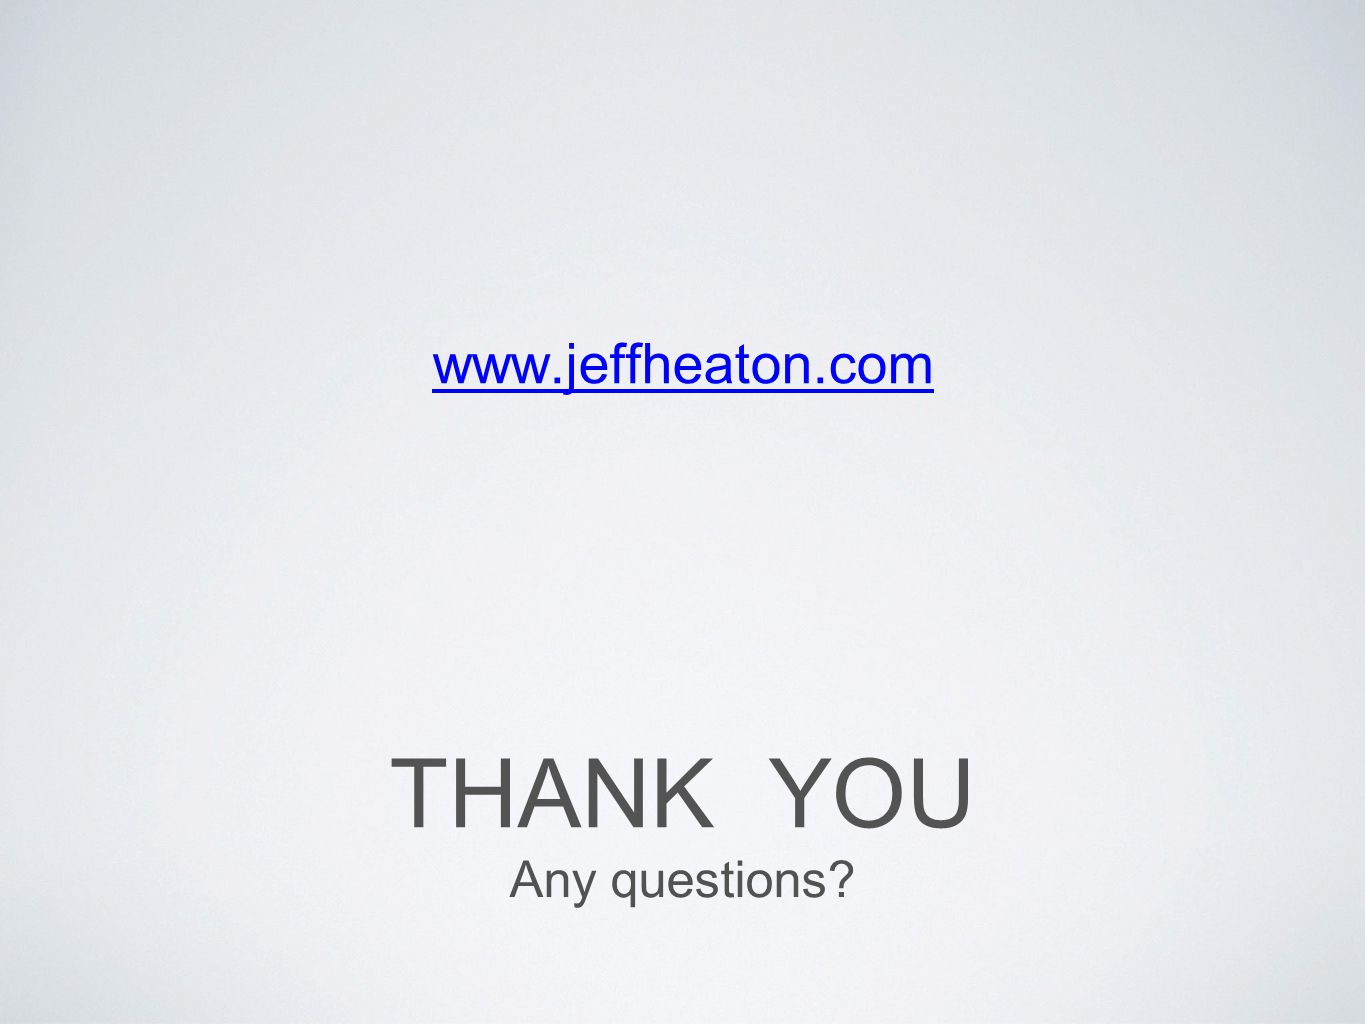 www.jeffheaton.com Thank you Any questions